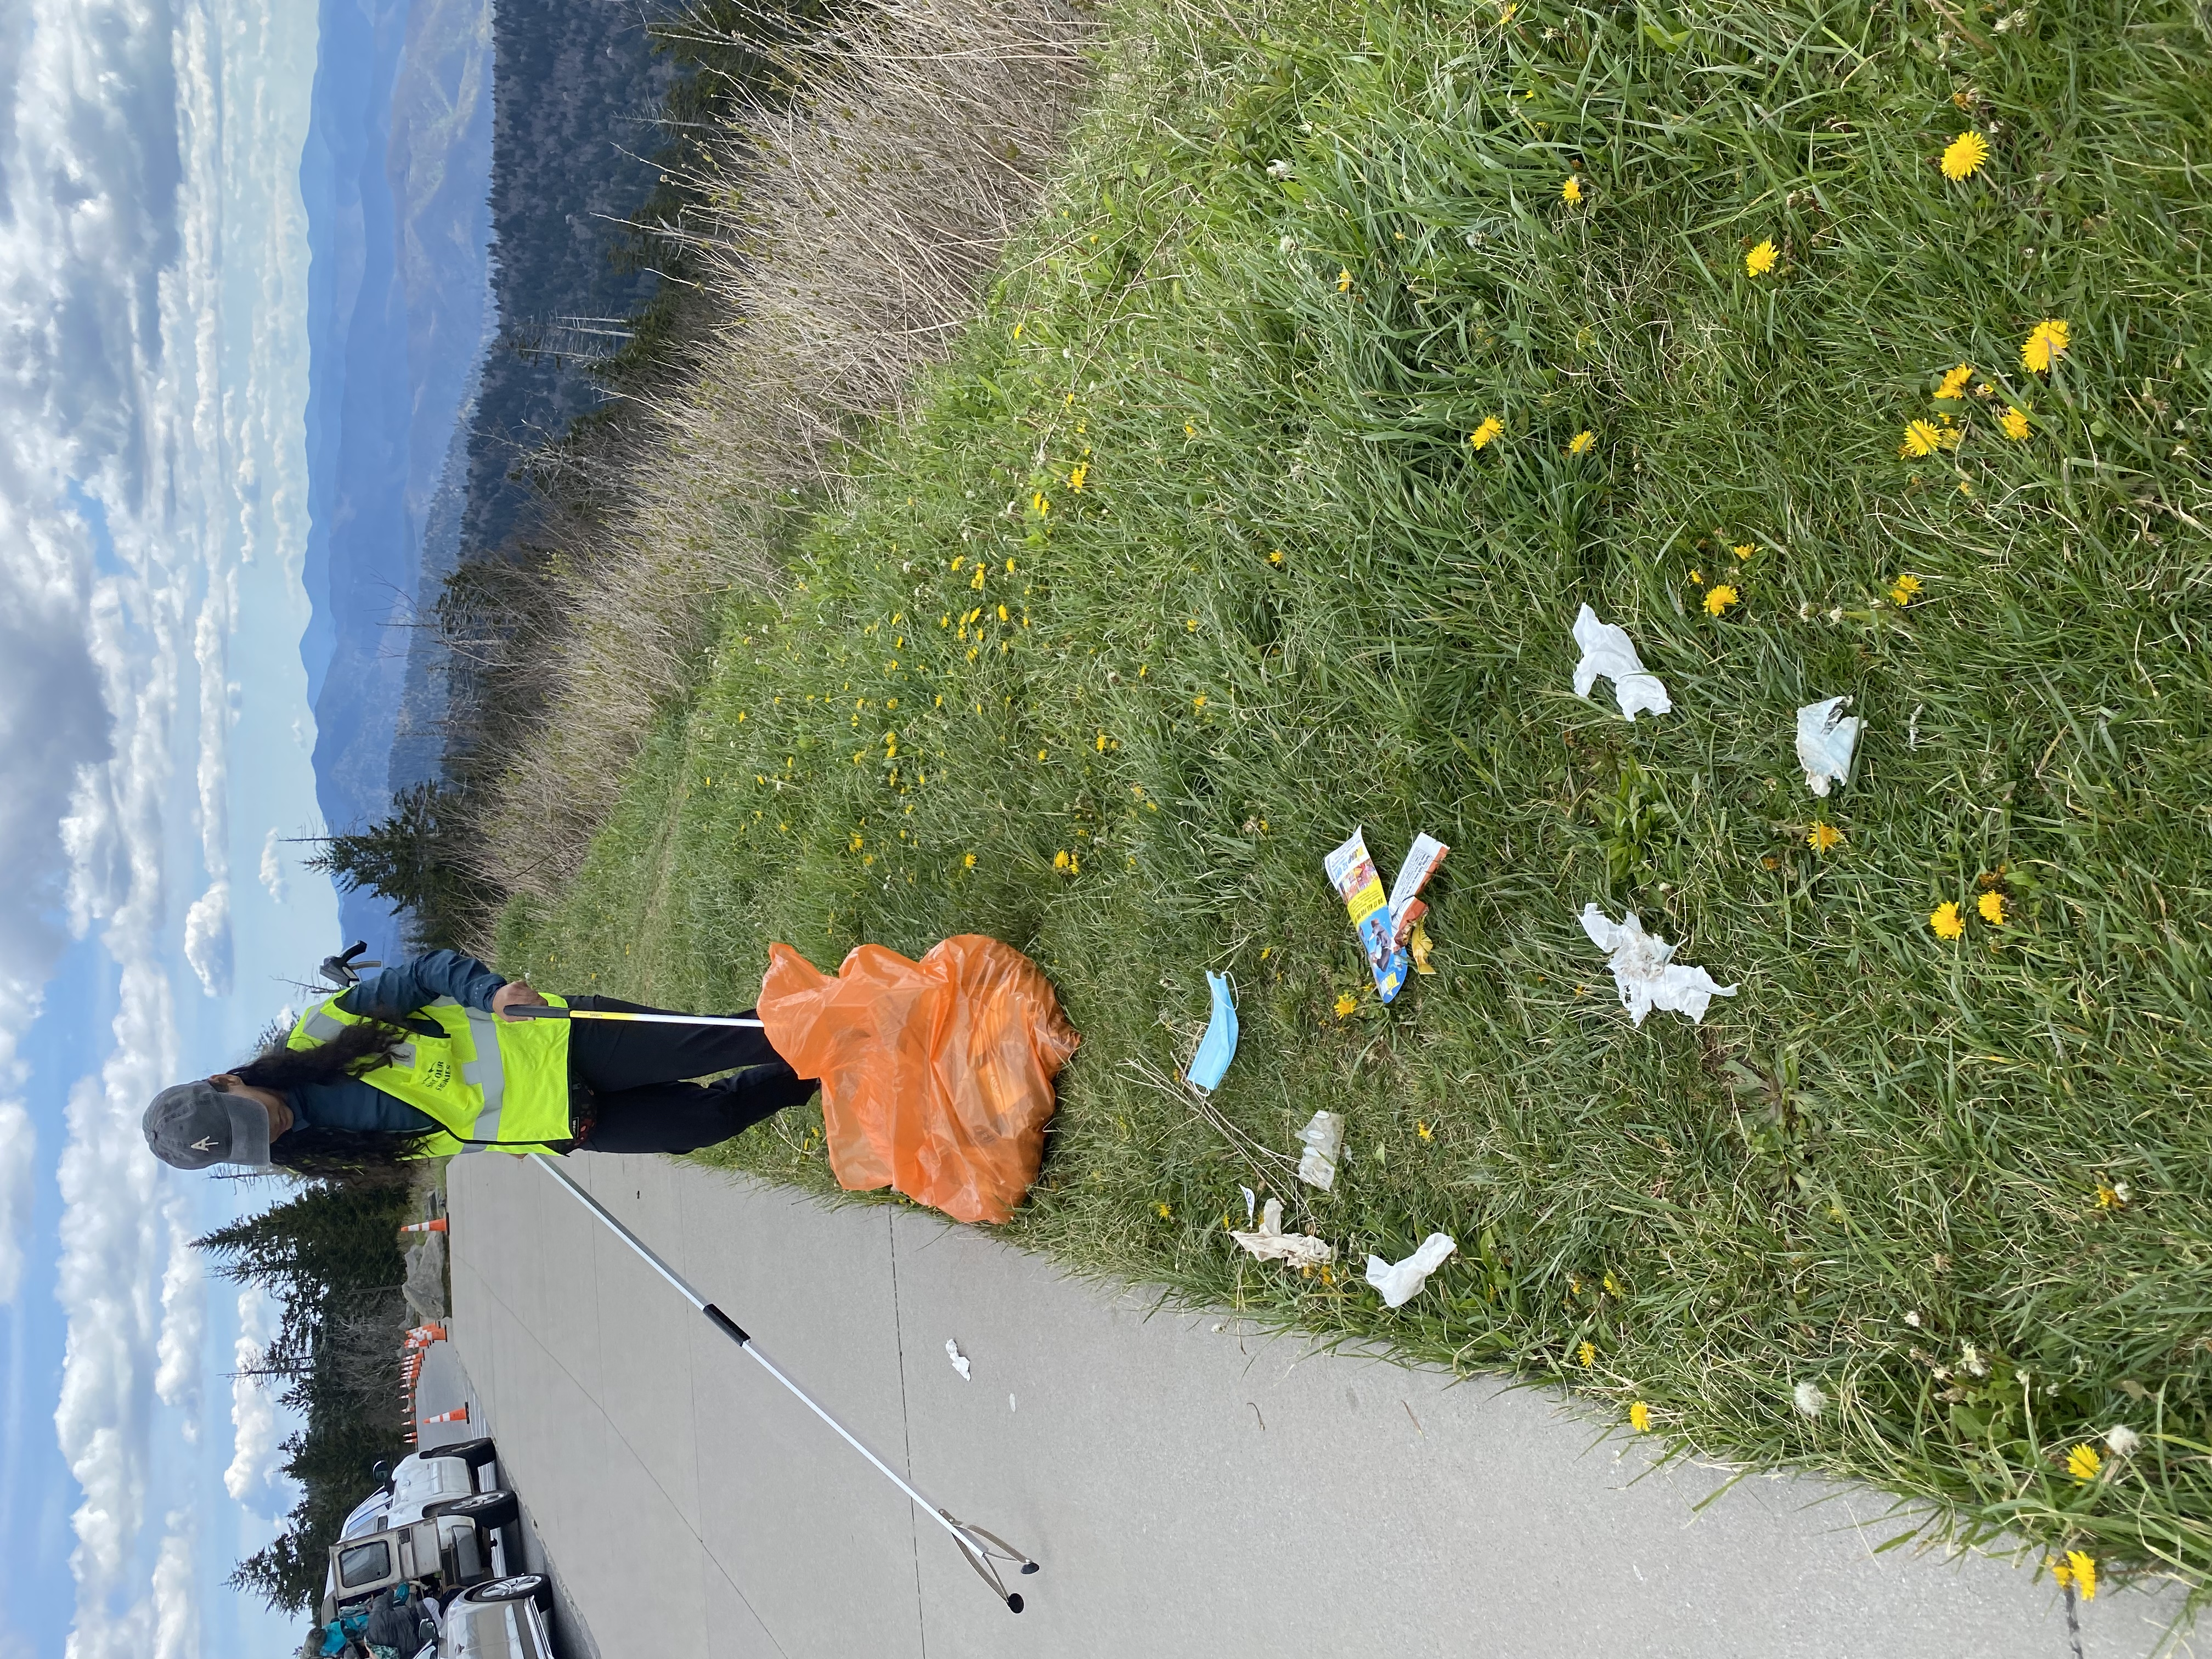 Alex García, Appalachian Trail Conservancy LatinX Hikers Partnership Coordinator volunteering on a May 15, 2021, cleanup on Clingmans Dome Road. Image courtesy of Jerry and Darlene Willis.